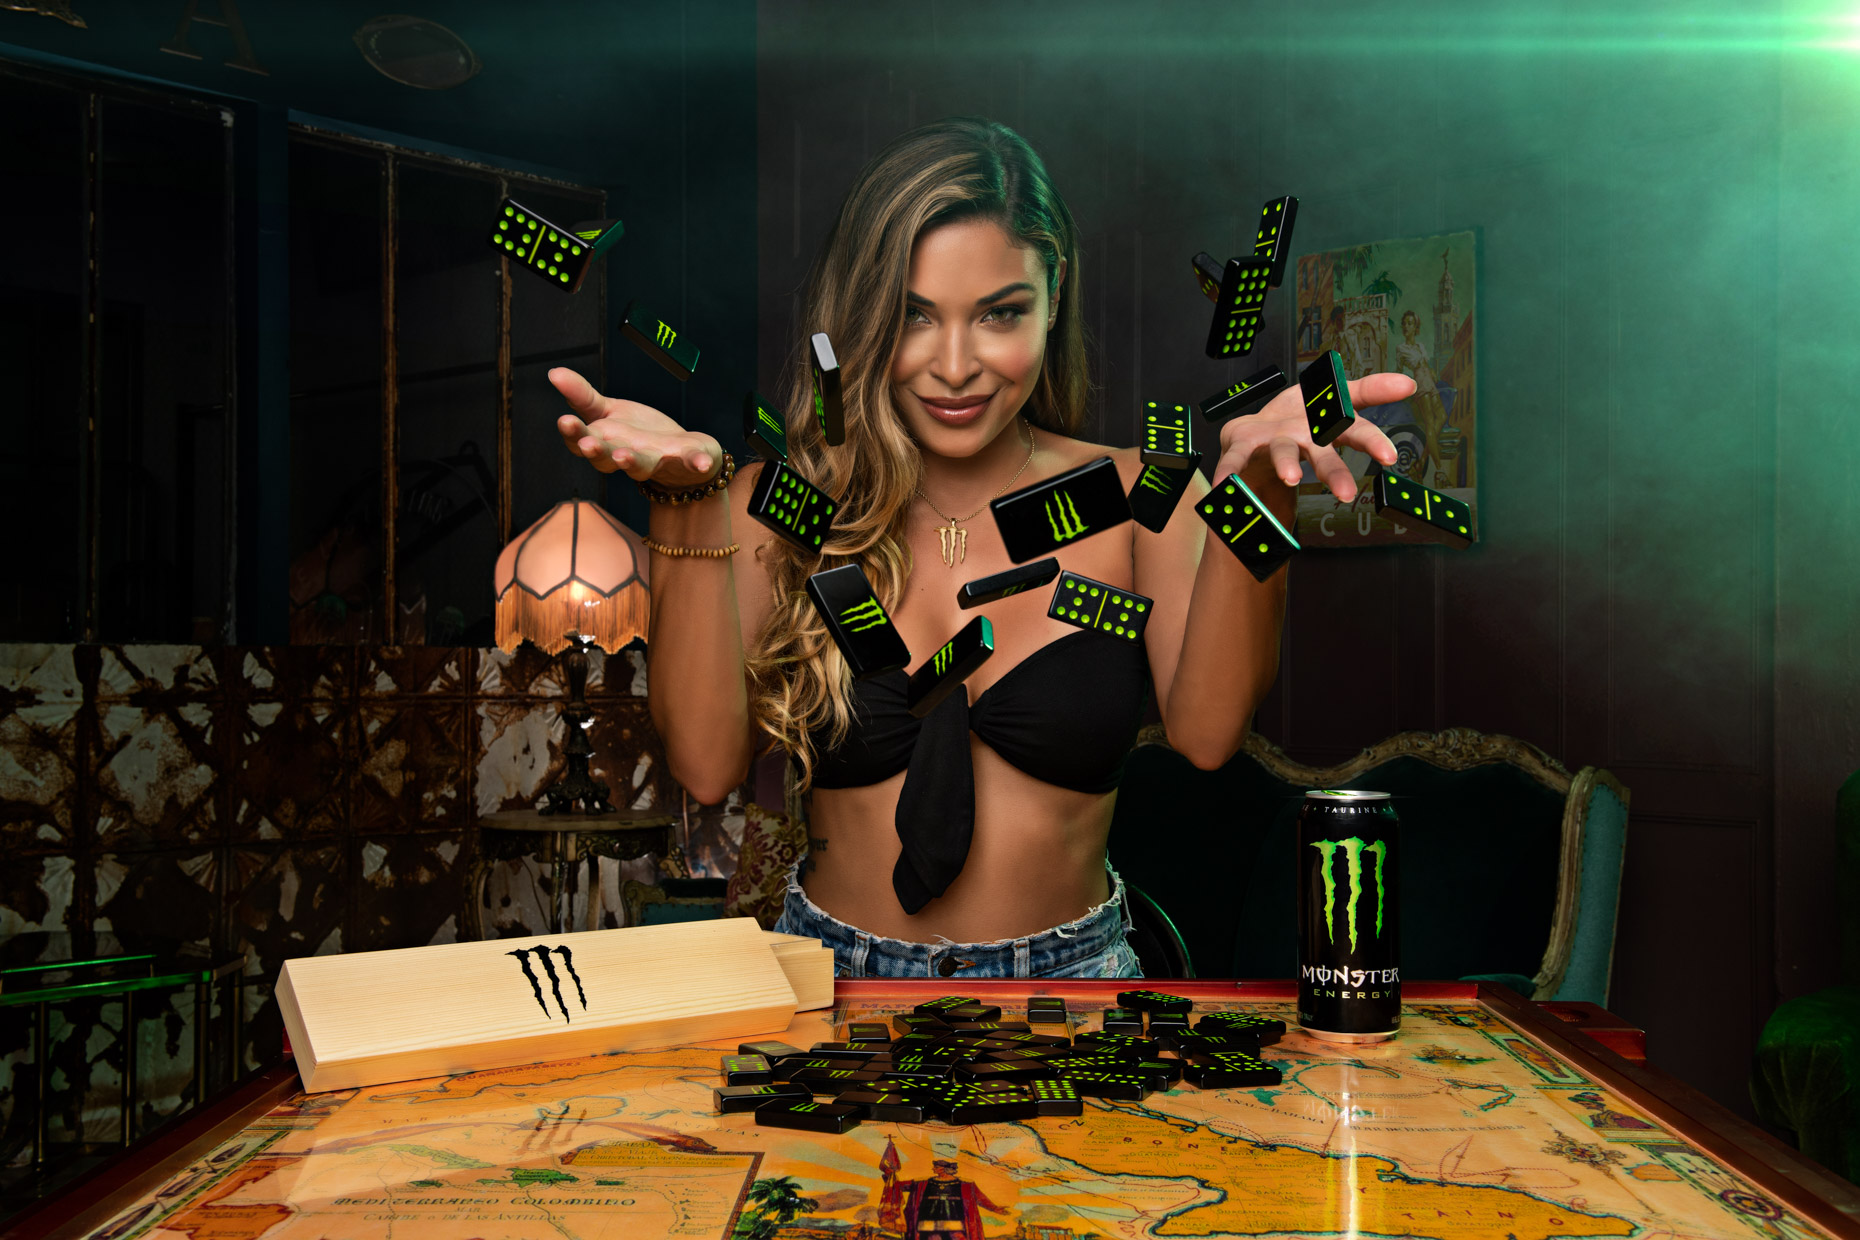 Monster Energy - Dominoes advertising campaign - Single Model Monster Girl